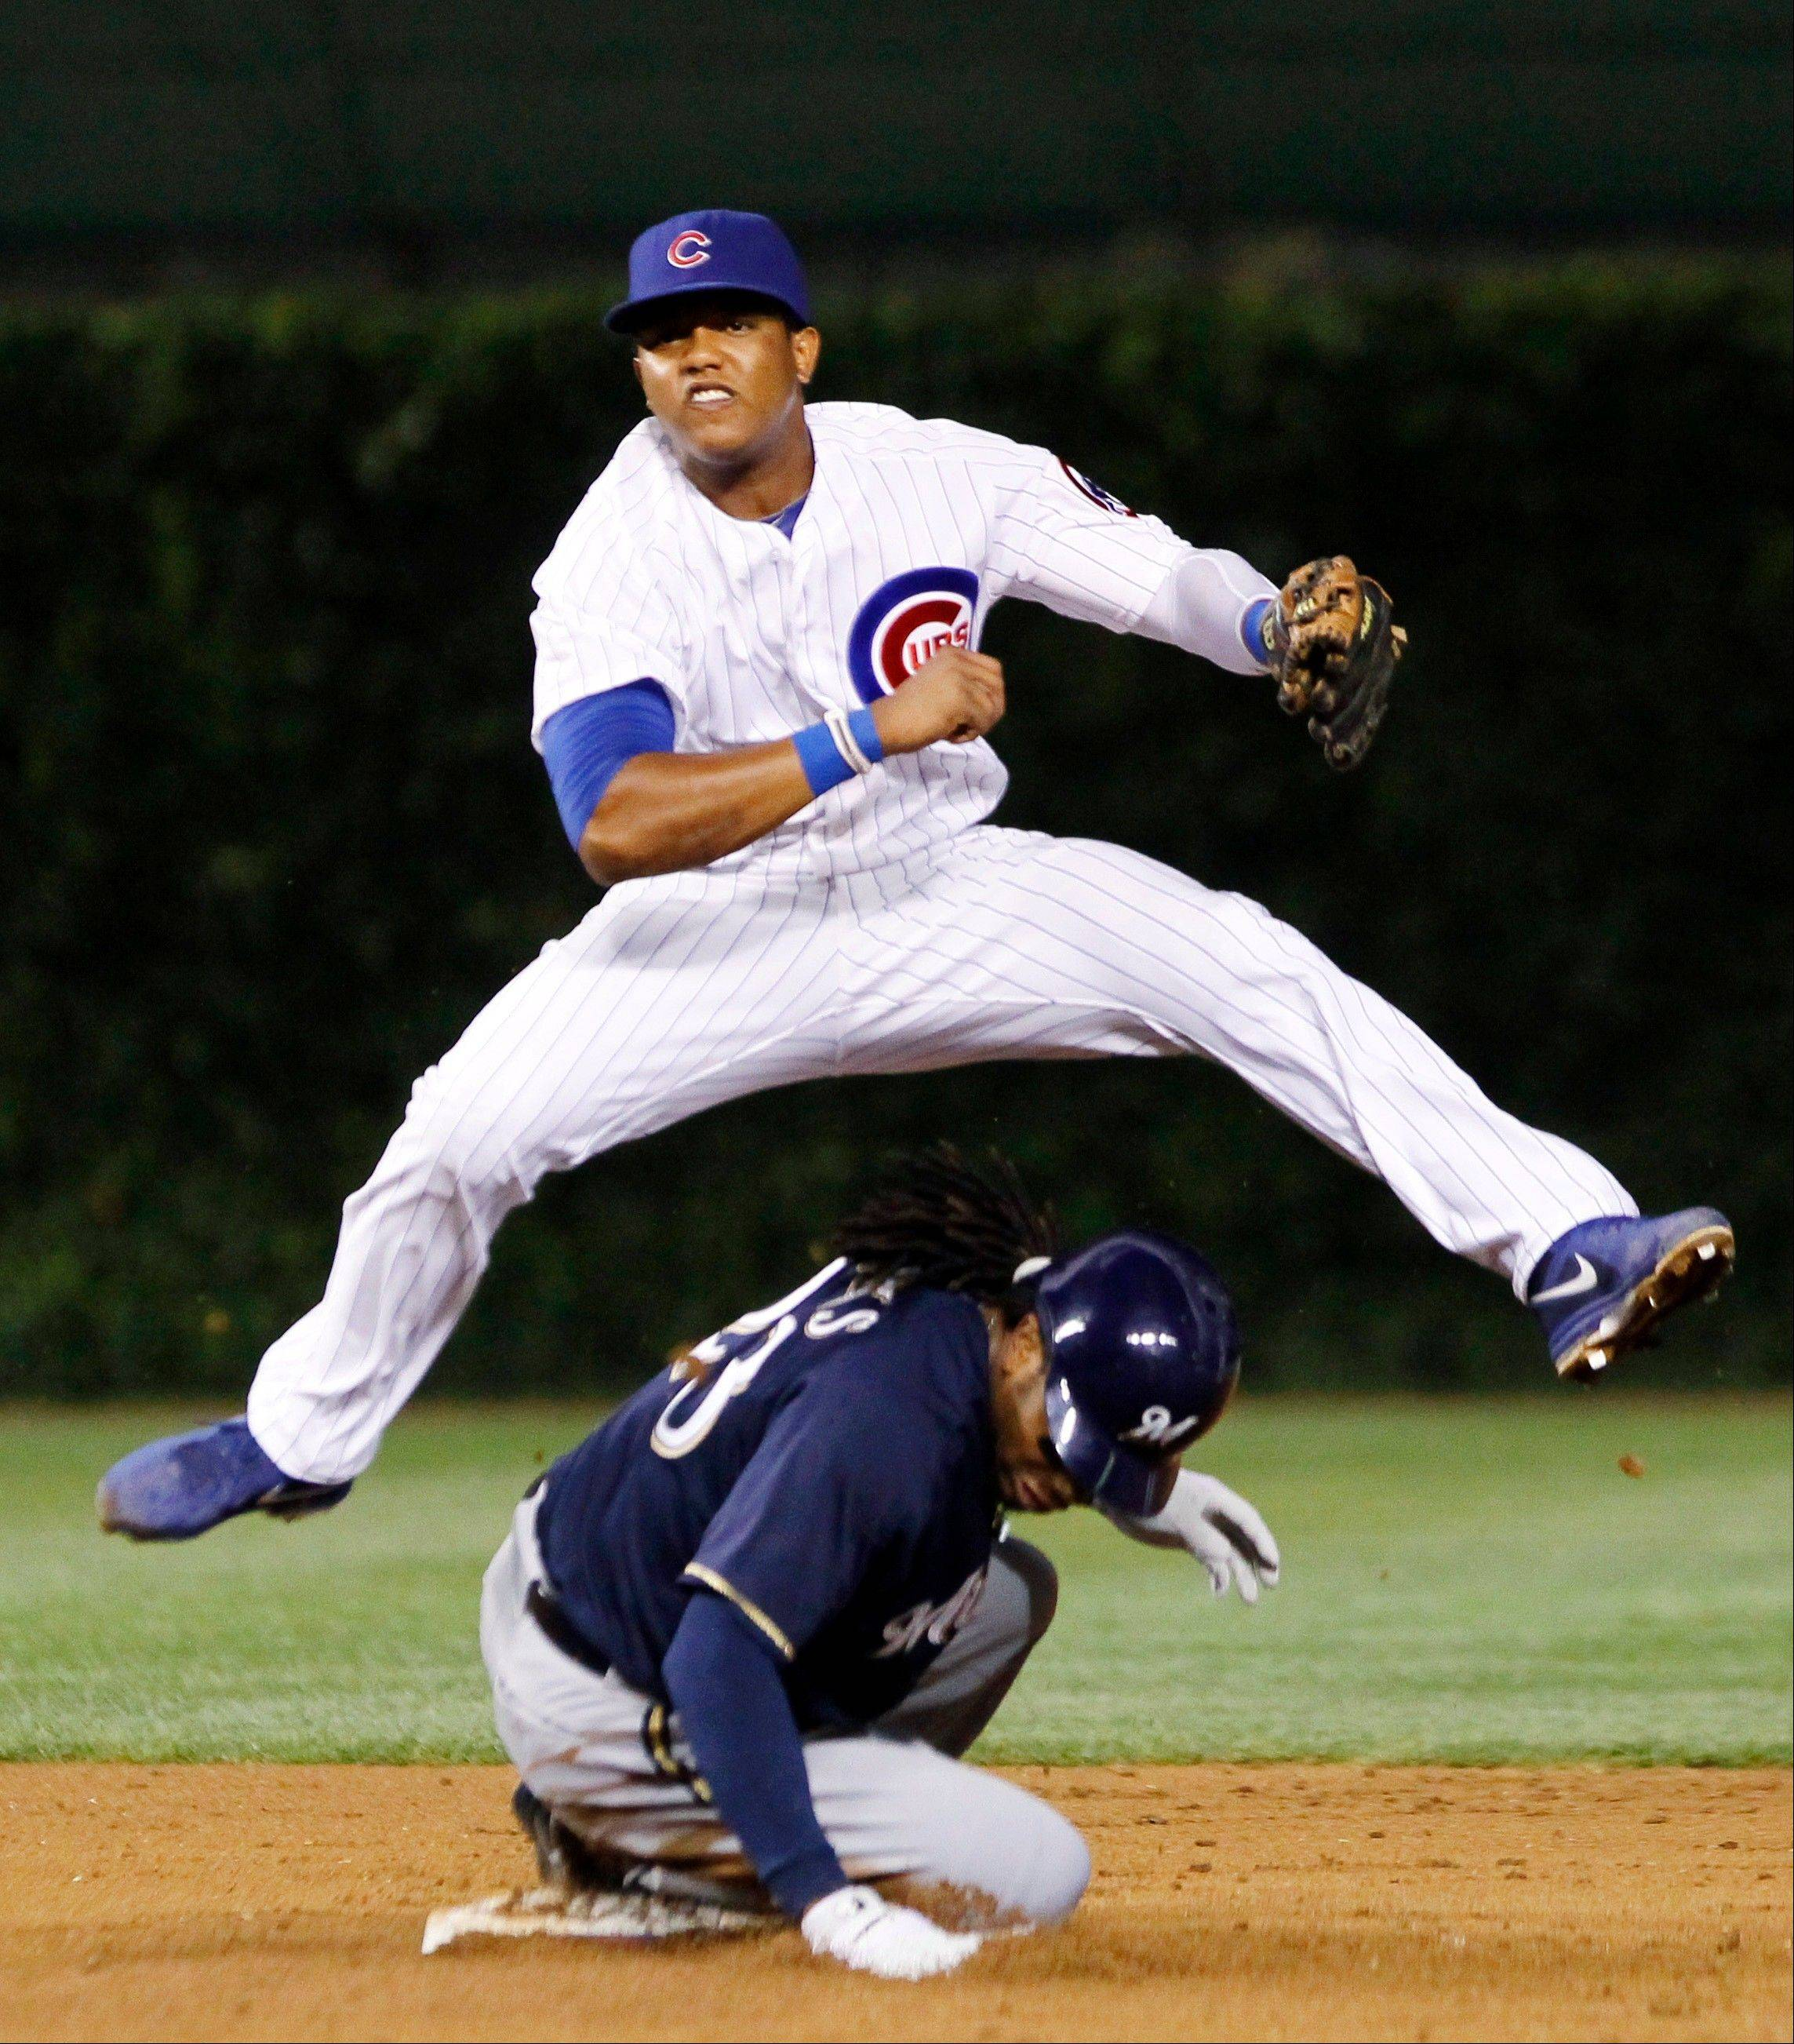 Cubs shortstop Starlin Castro begins a double play, forcing the Milwaukee Brewers� Rickie Weeks at second and getting Ryan Braun at first during the third inning Monday at Wrigley Field.